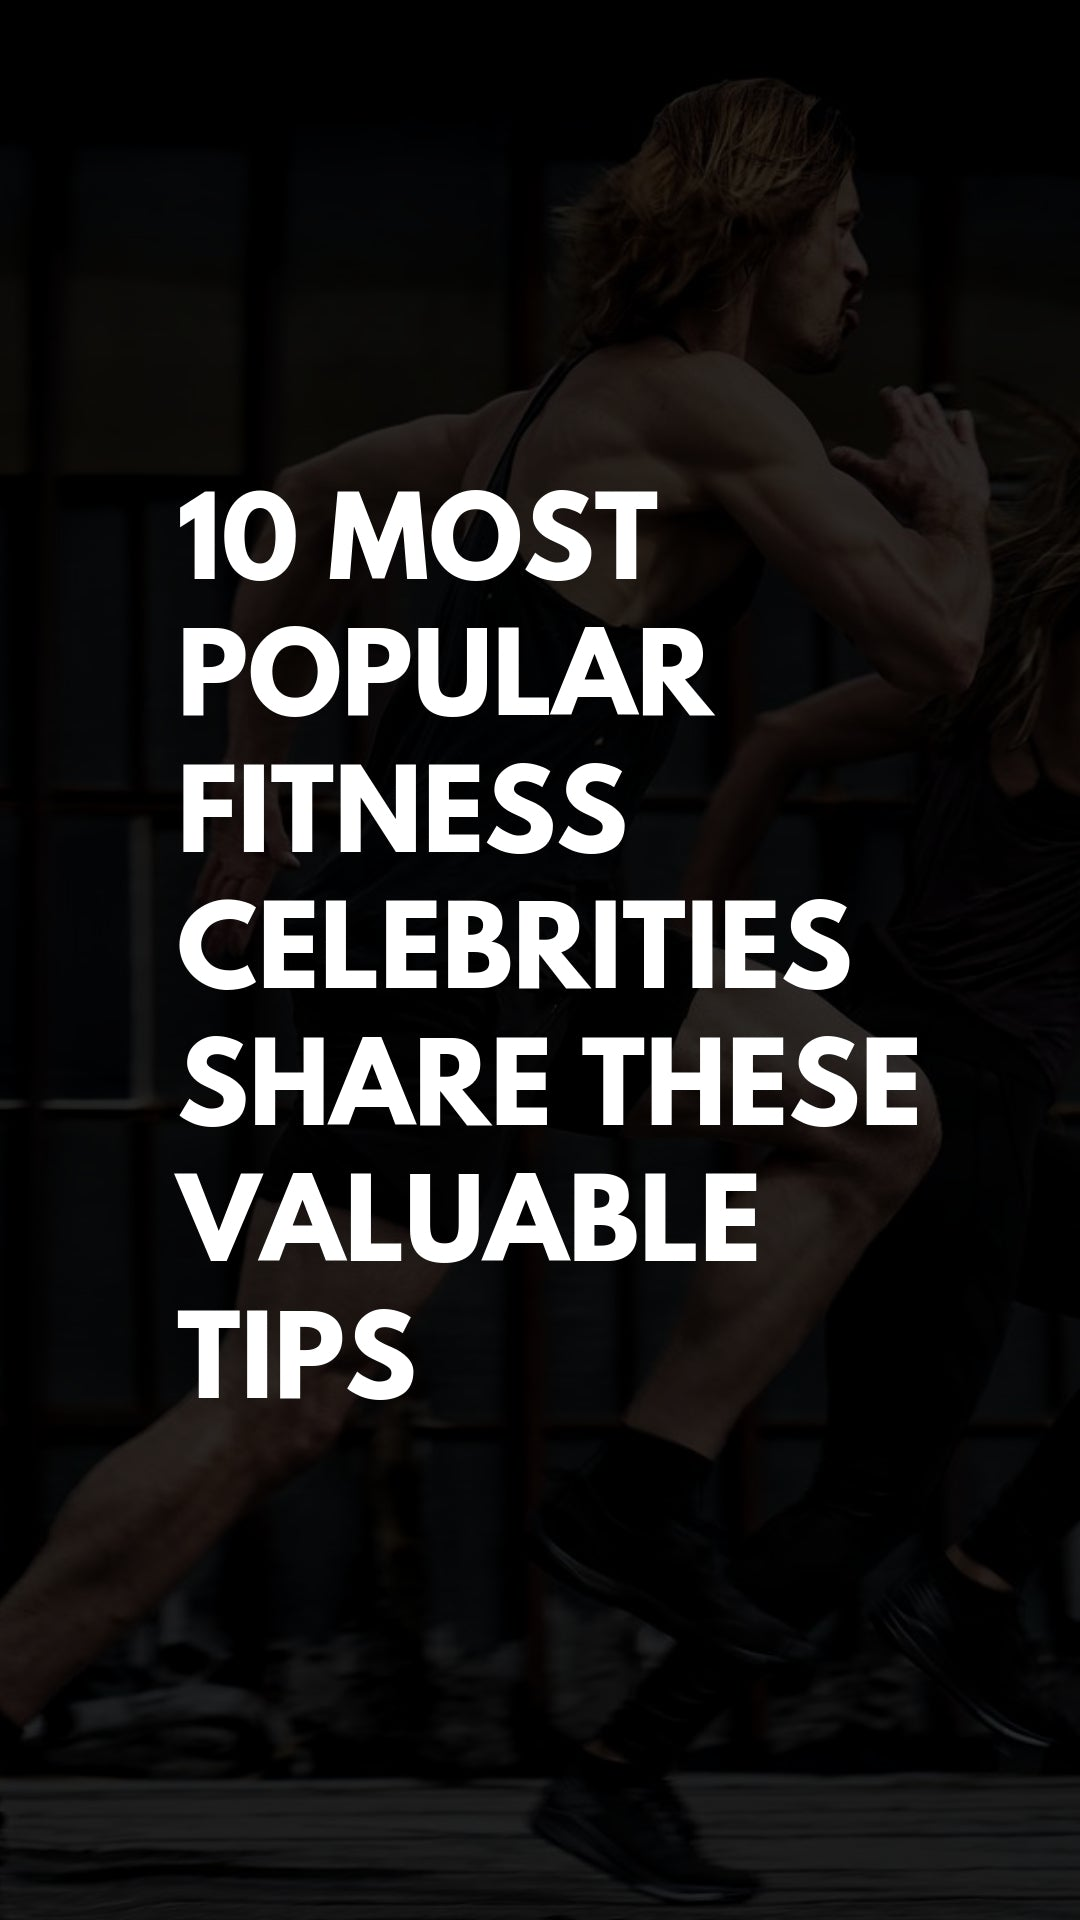 10 Most Popular Fitness Celebrities Share These Valuable Tips